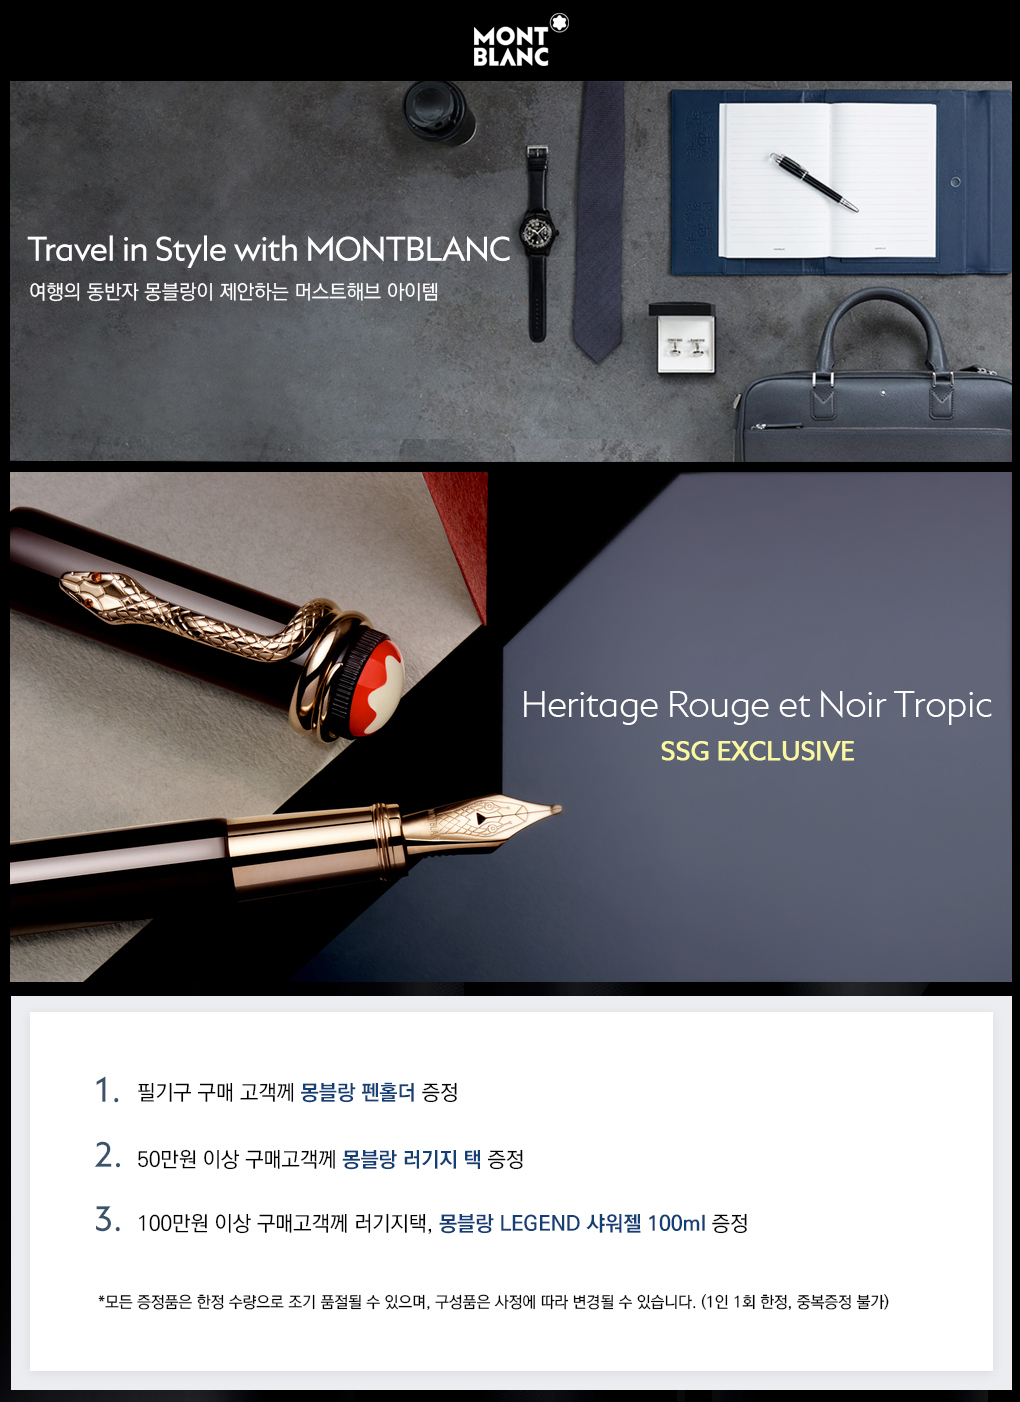 Montblanc_TravelStyling